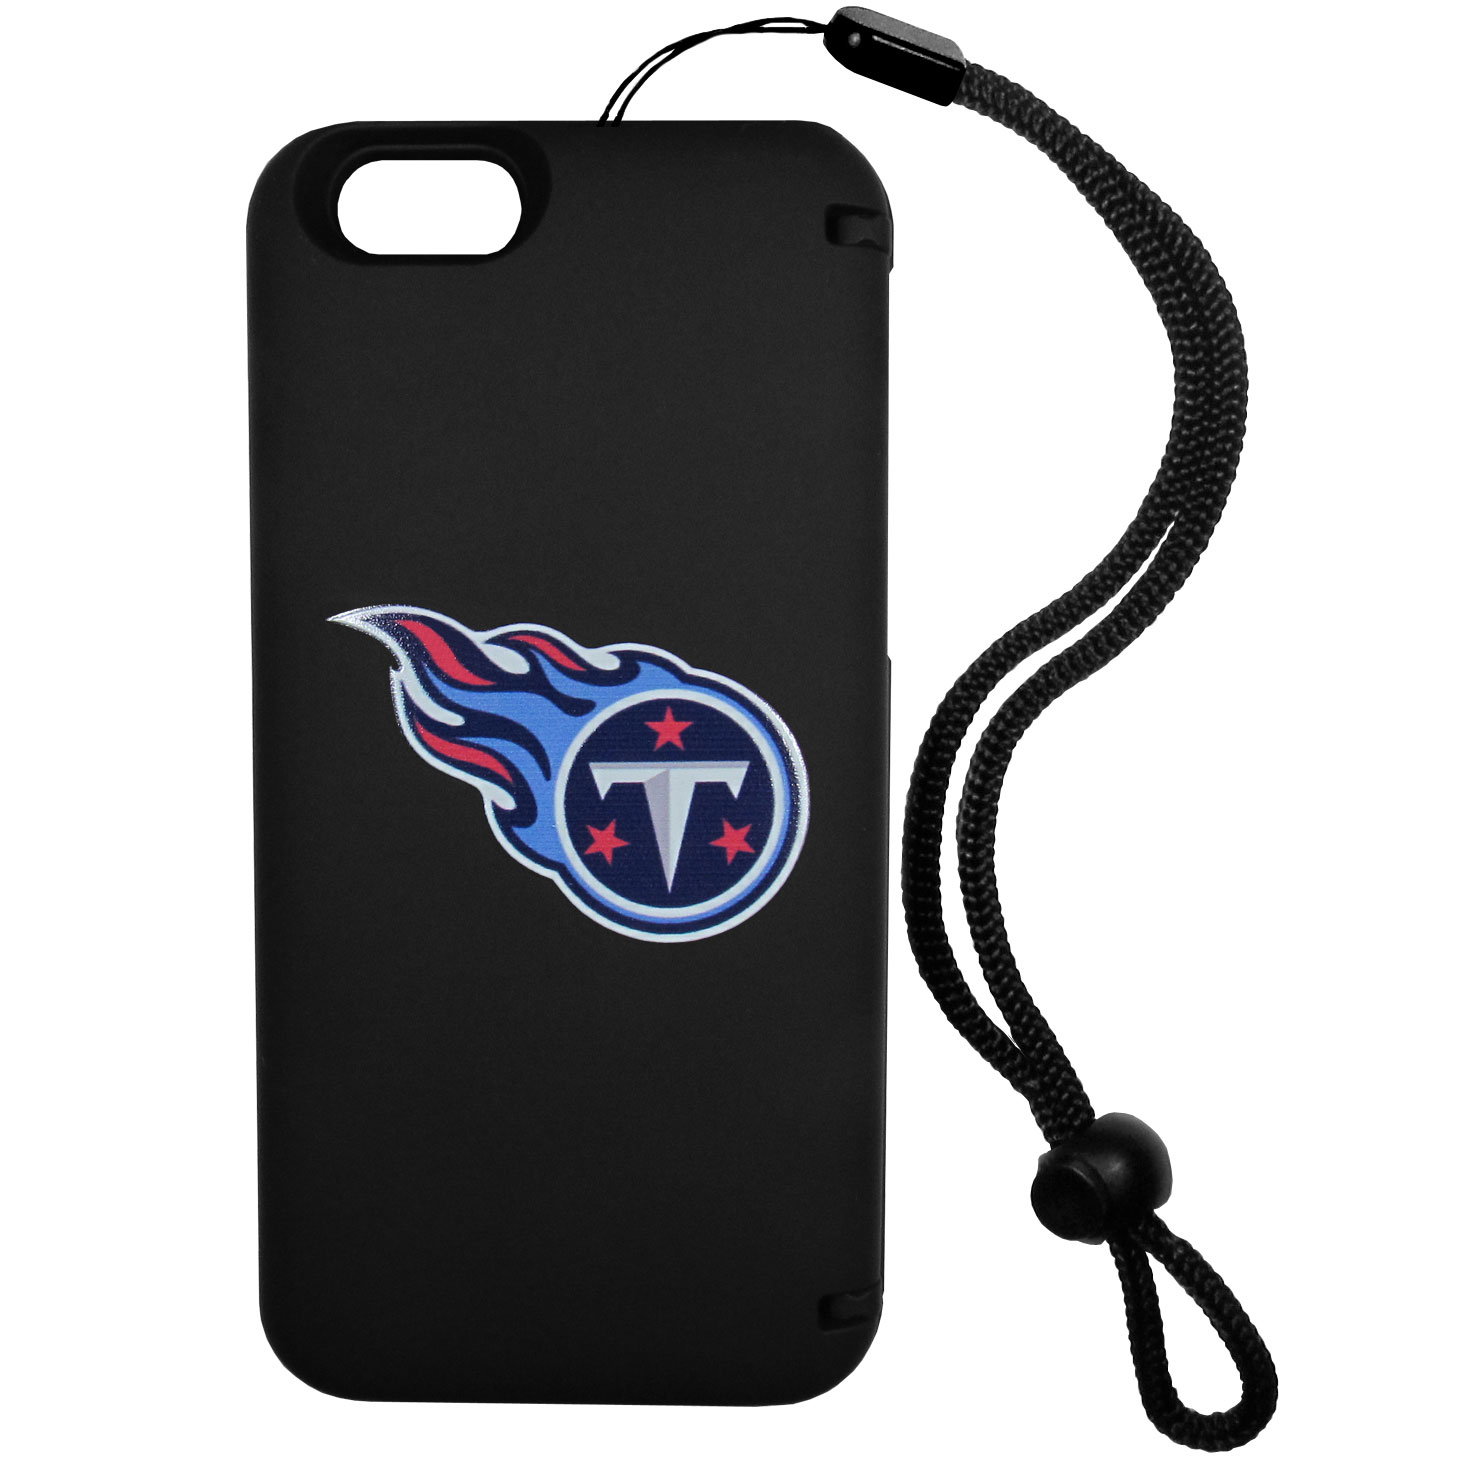 Tennessee Titans iPhone 6 Everything Case - This case really does have everything but the kitchen sink! The hidden compartment lets you keep your cards, money and tickets to the big game safe and secure and has a compact mirror so you can make sure your game face is ready to go. It also comes with a kickstand to make chatting and watching videos a breeze. The wrist strap allows you to travel with ease with your everything case. If that's not enough, it also comes with the Tennessee Titans logo printed in expert detail on the front.